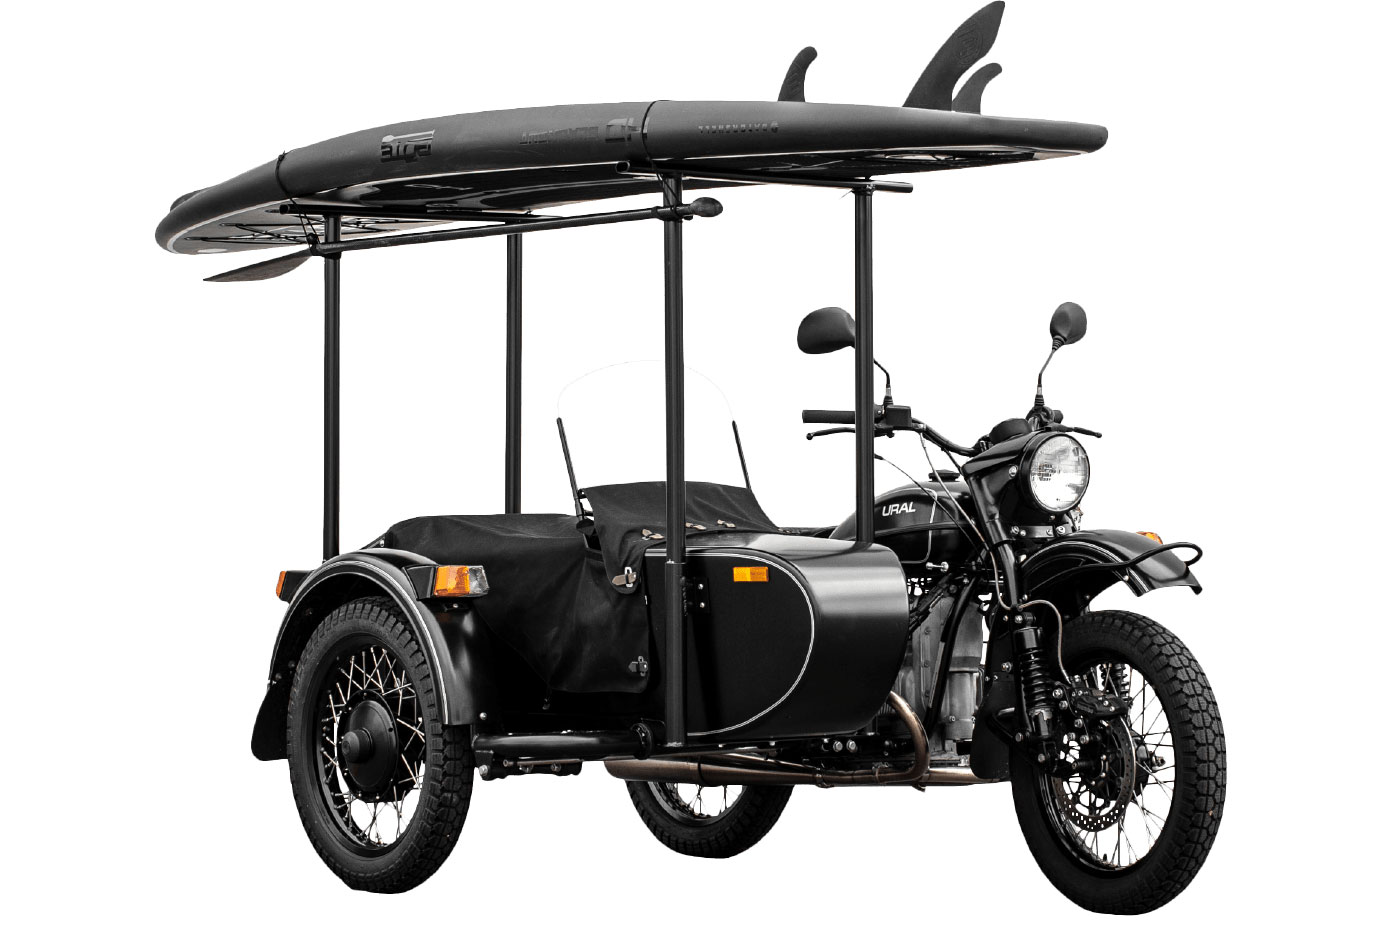 Ural Tourist sidecar motorcycle with BOTE SUP